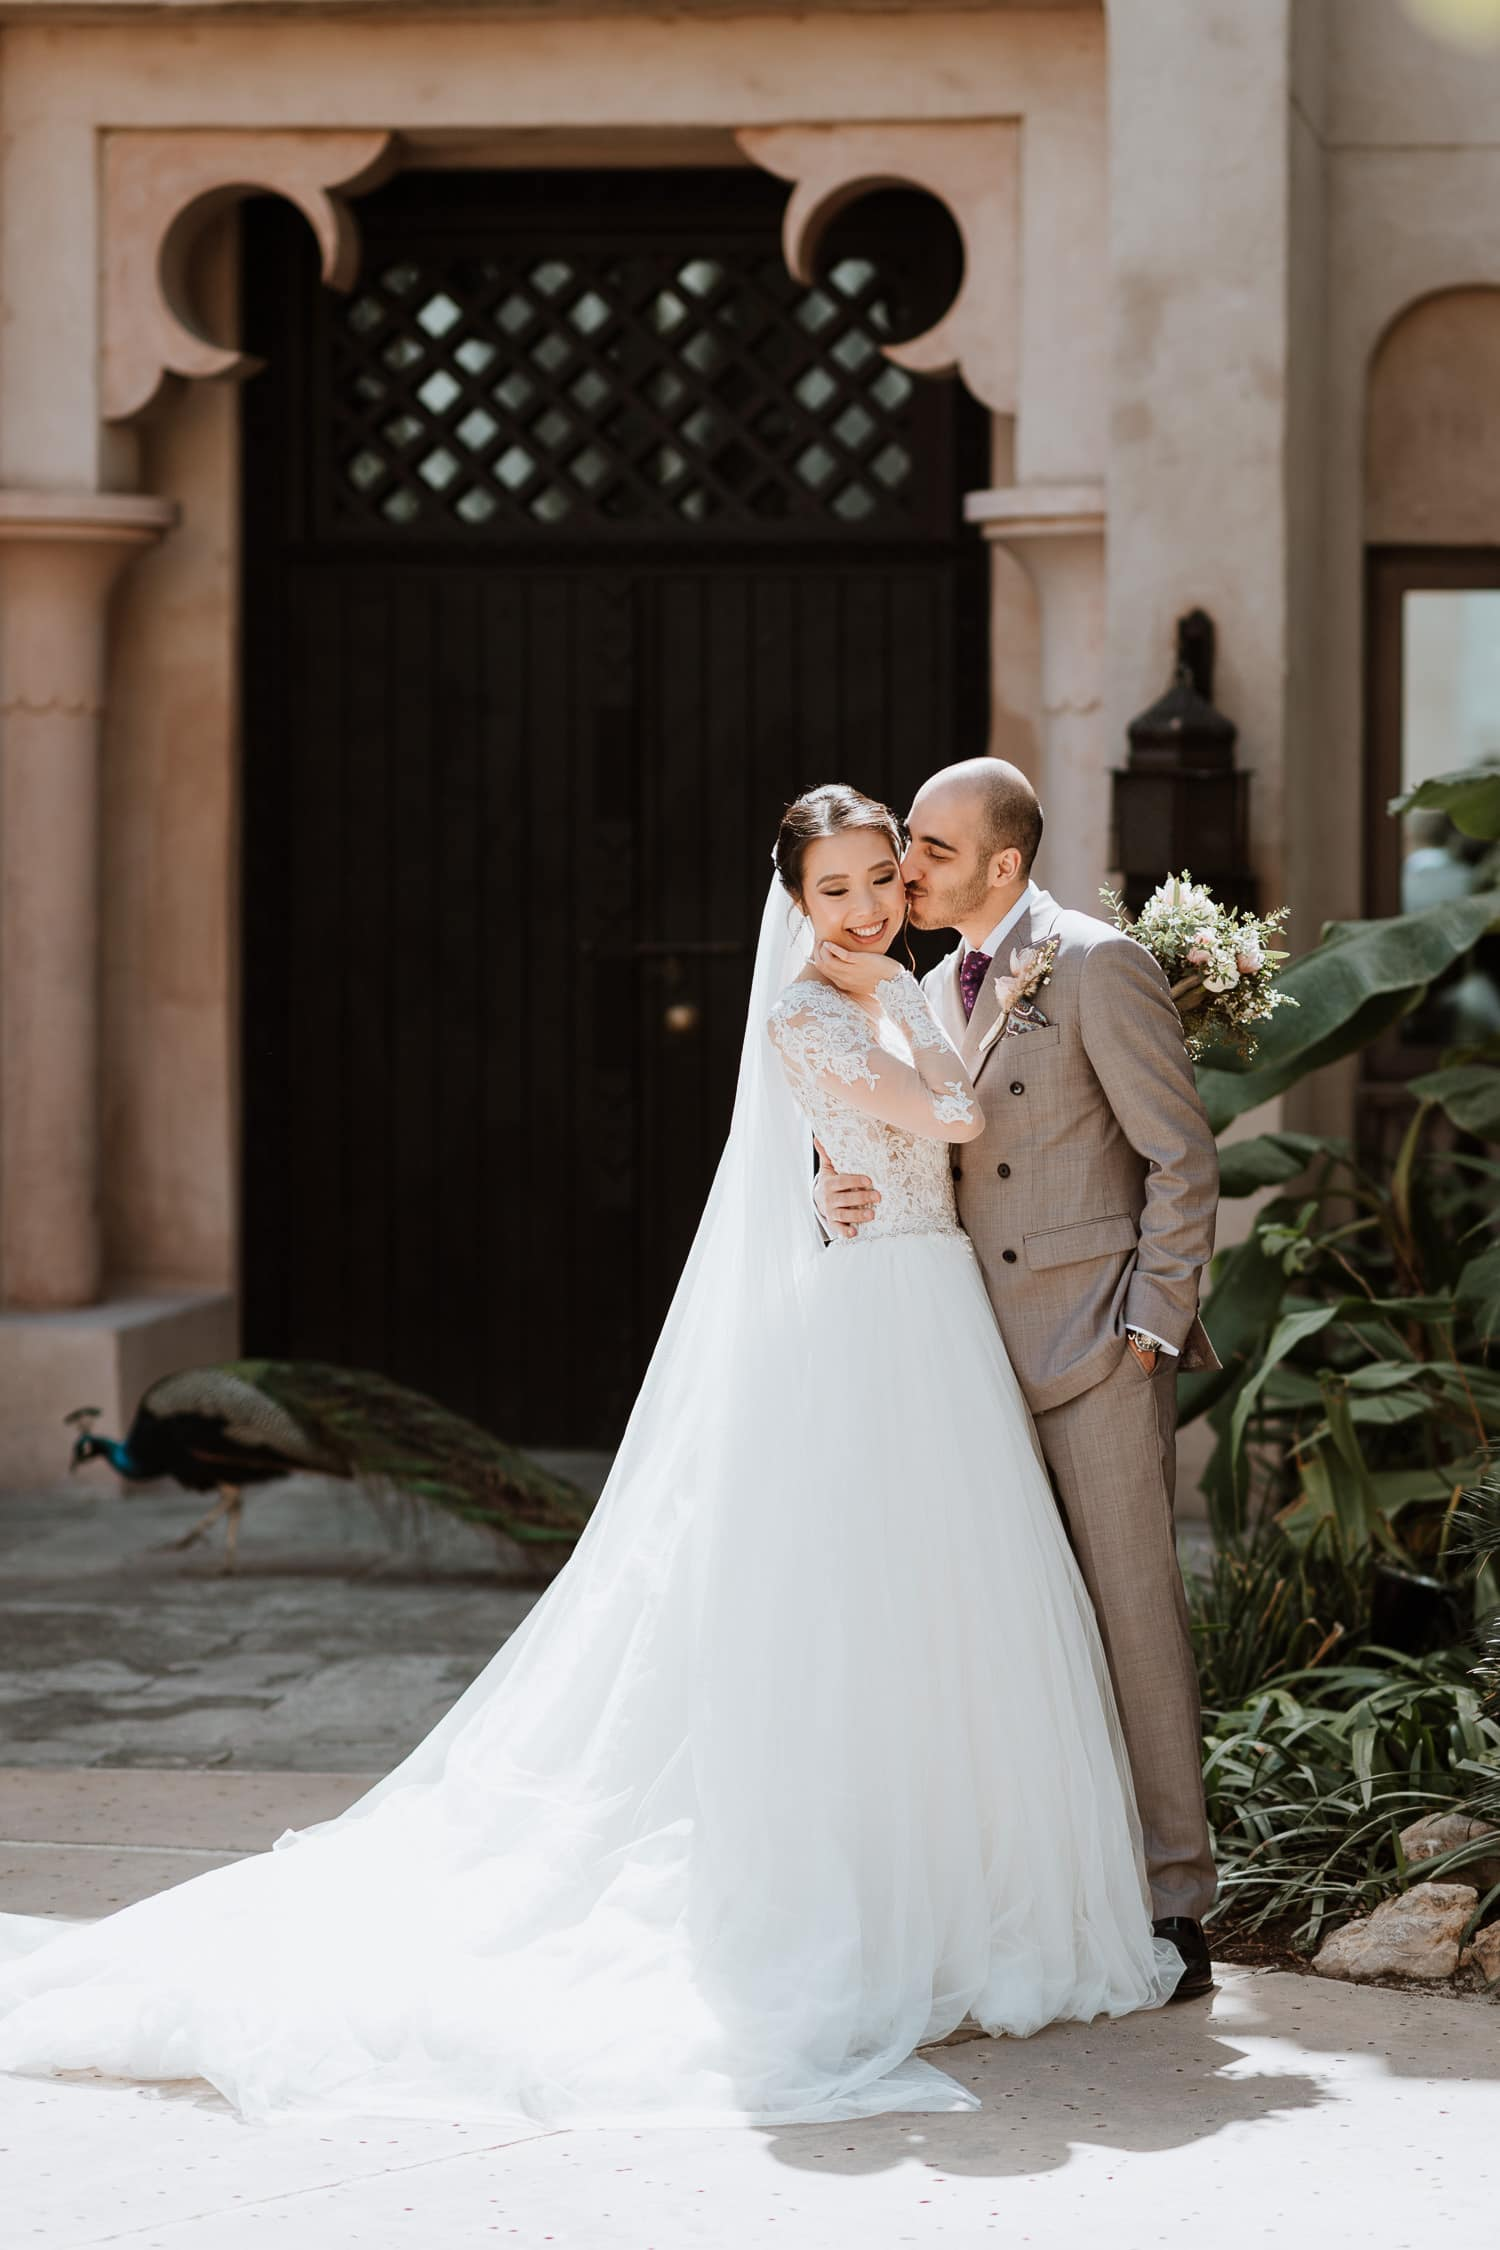 Dubai Resort Wedding Photo at the Jumeirah Al Qasr Dubai